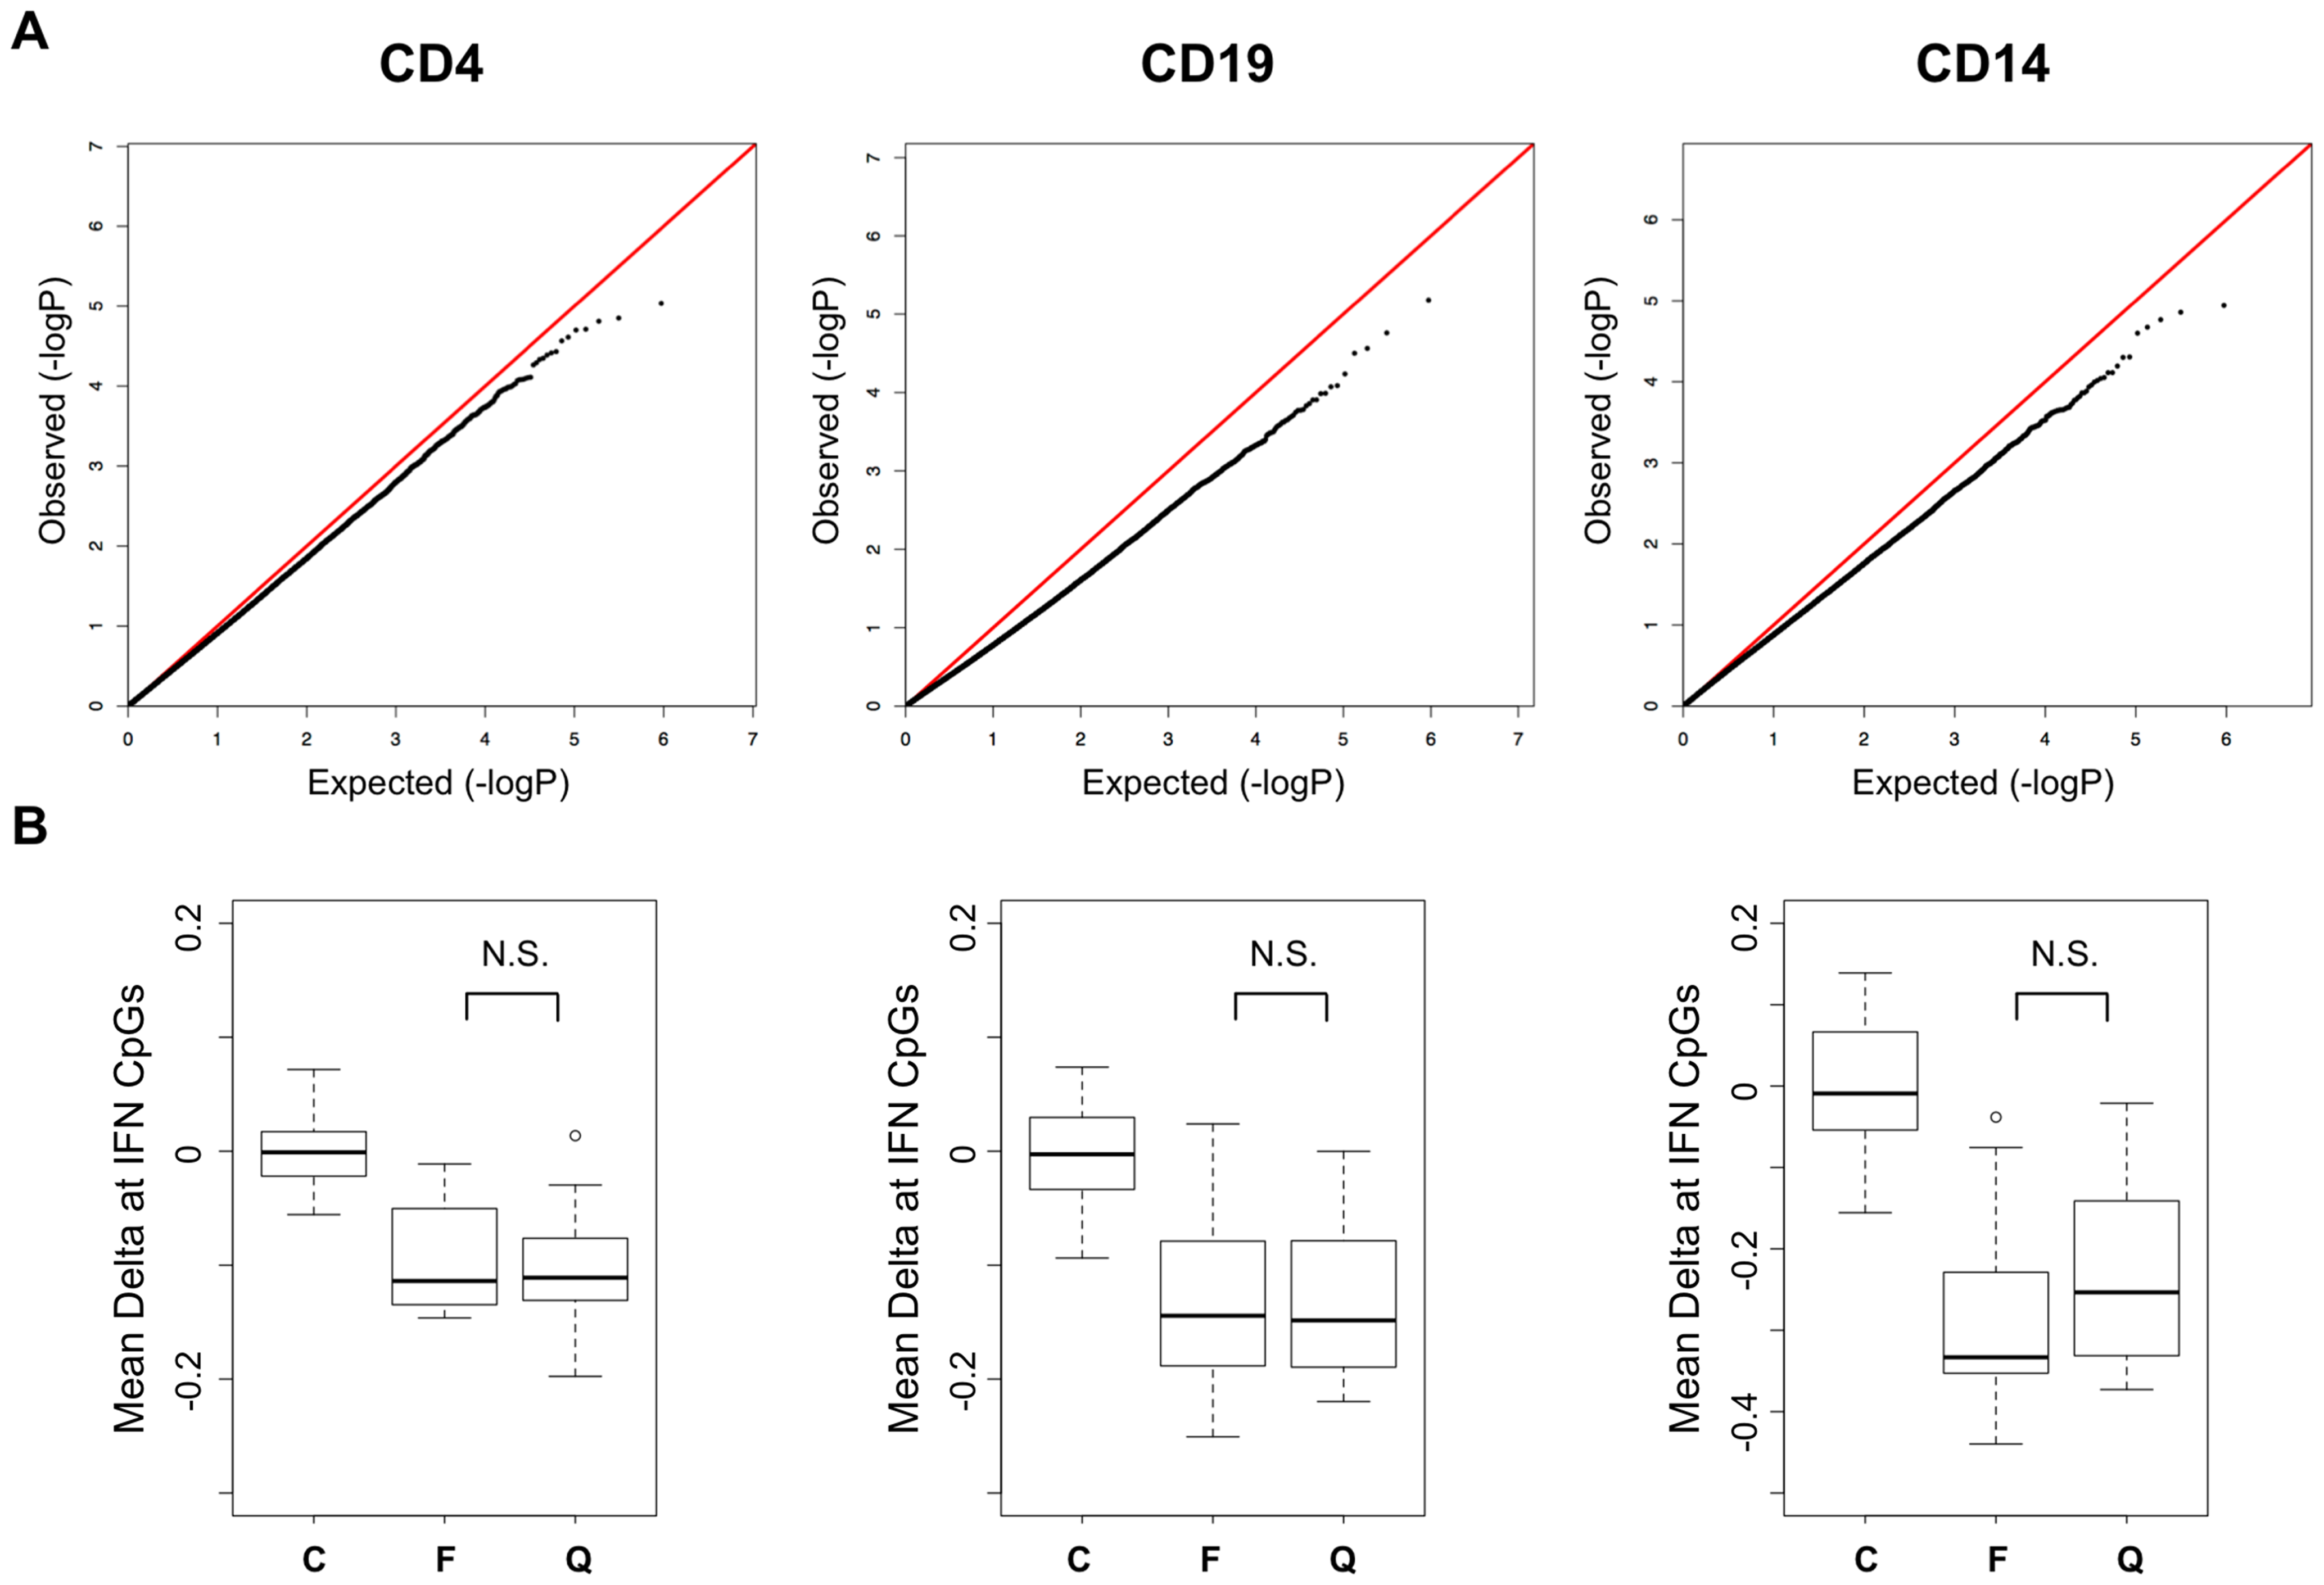 Disease activity QQ-Plots and the persistence of hypomethylation in quiescent patients.